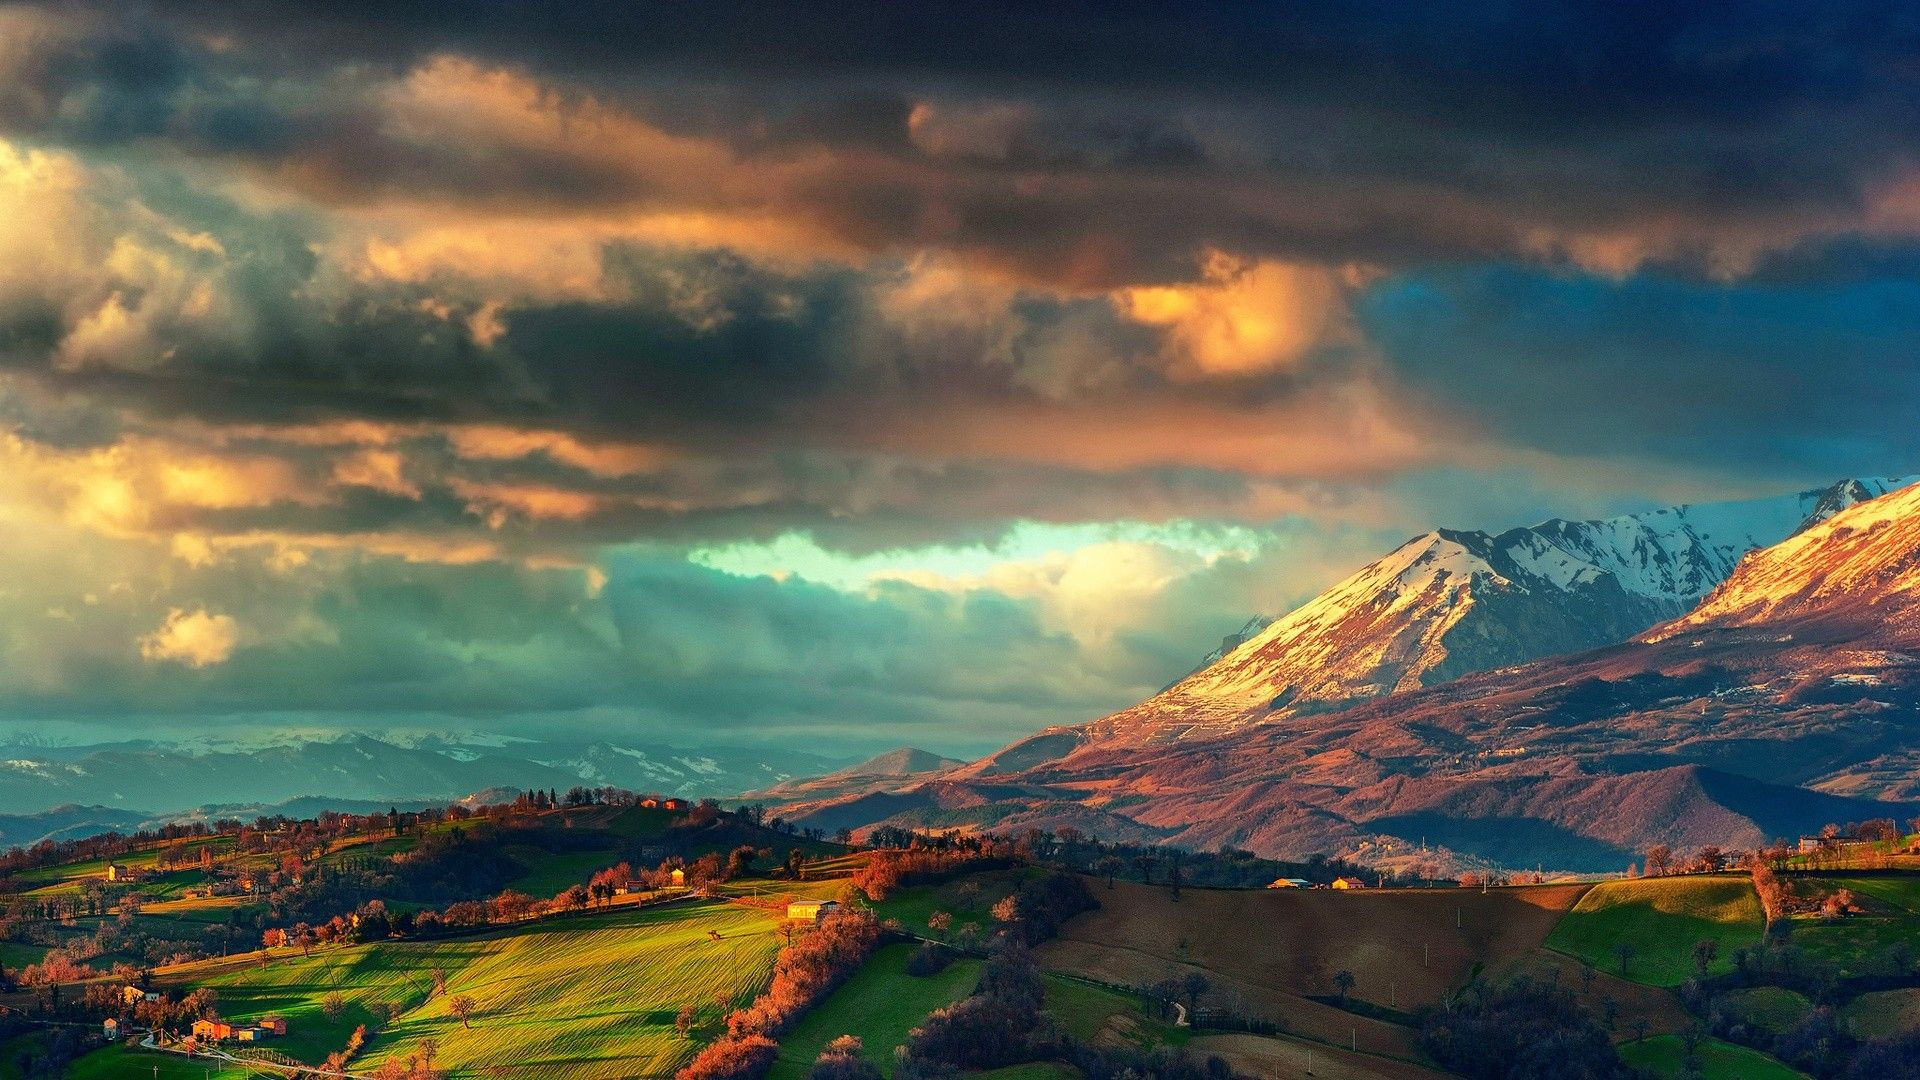 Sunrise Mountains Landscapes Nature Fields Spring Italy The Apennines Wallpaper 2932500 W Scenic Landscape Landscape Photography Art Landscape Wallpaper